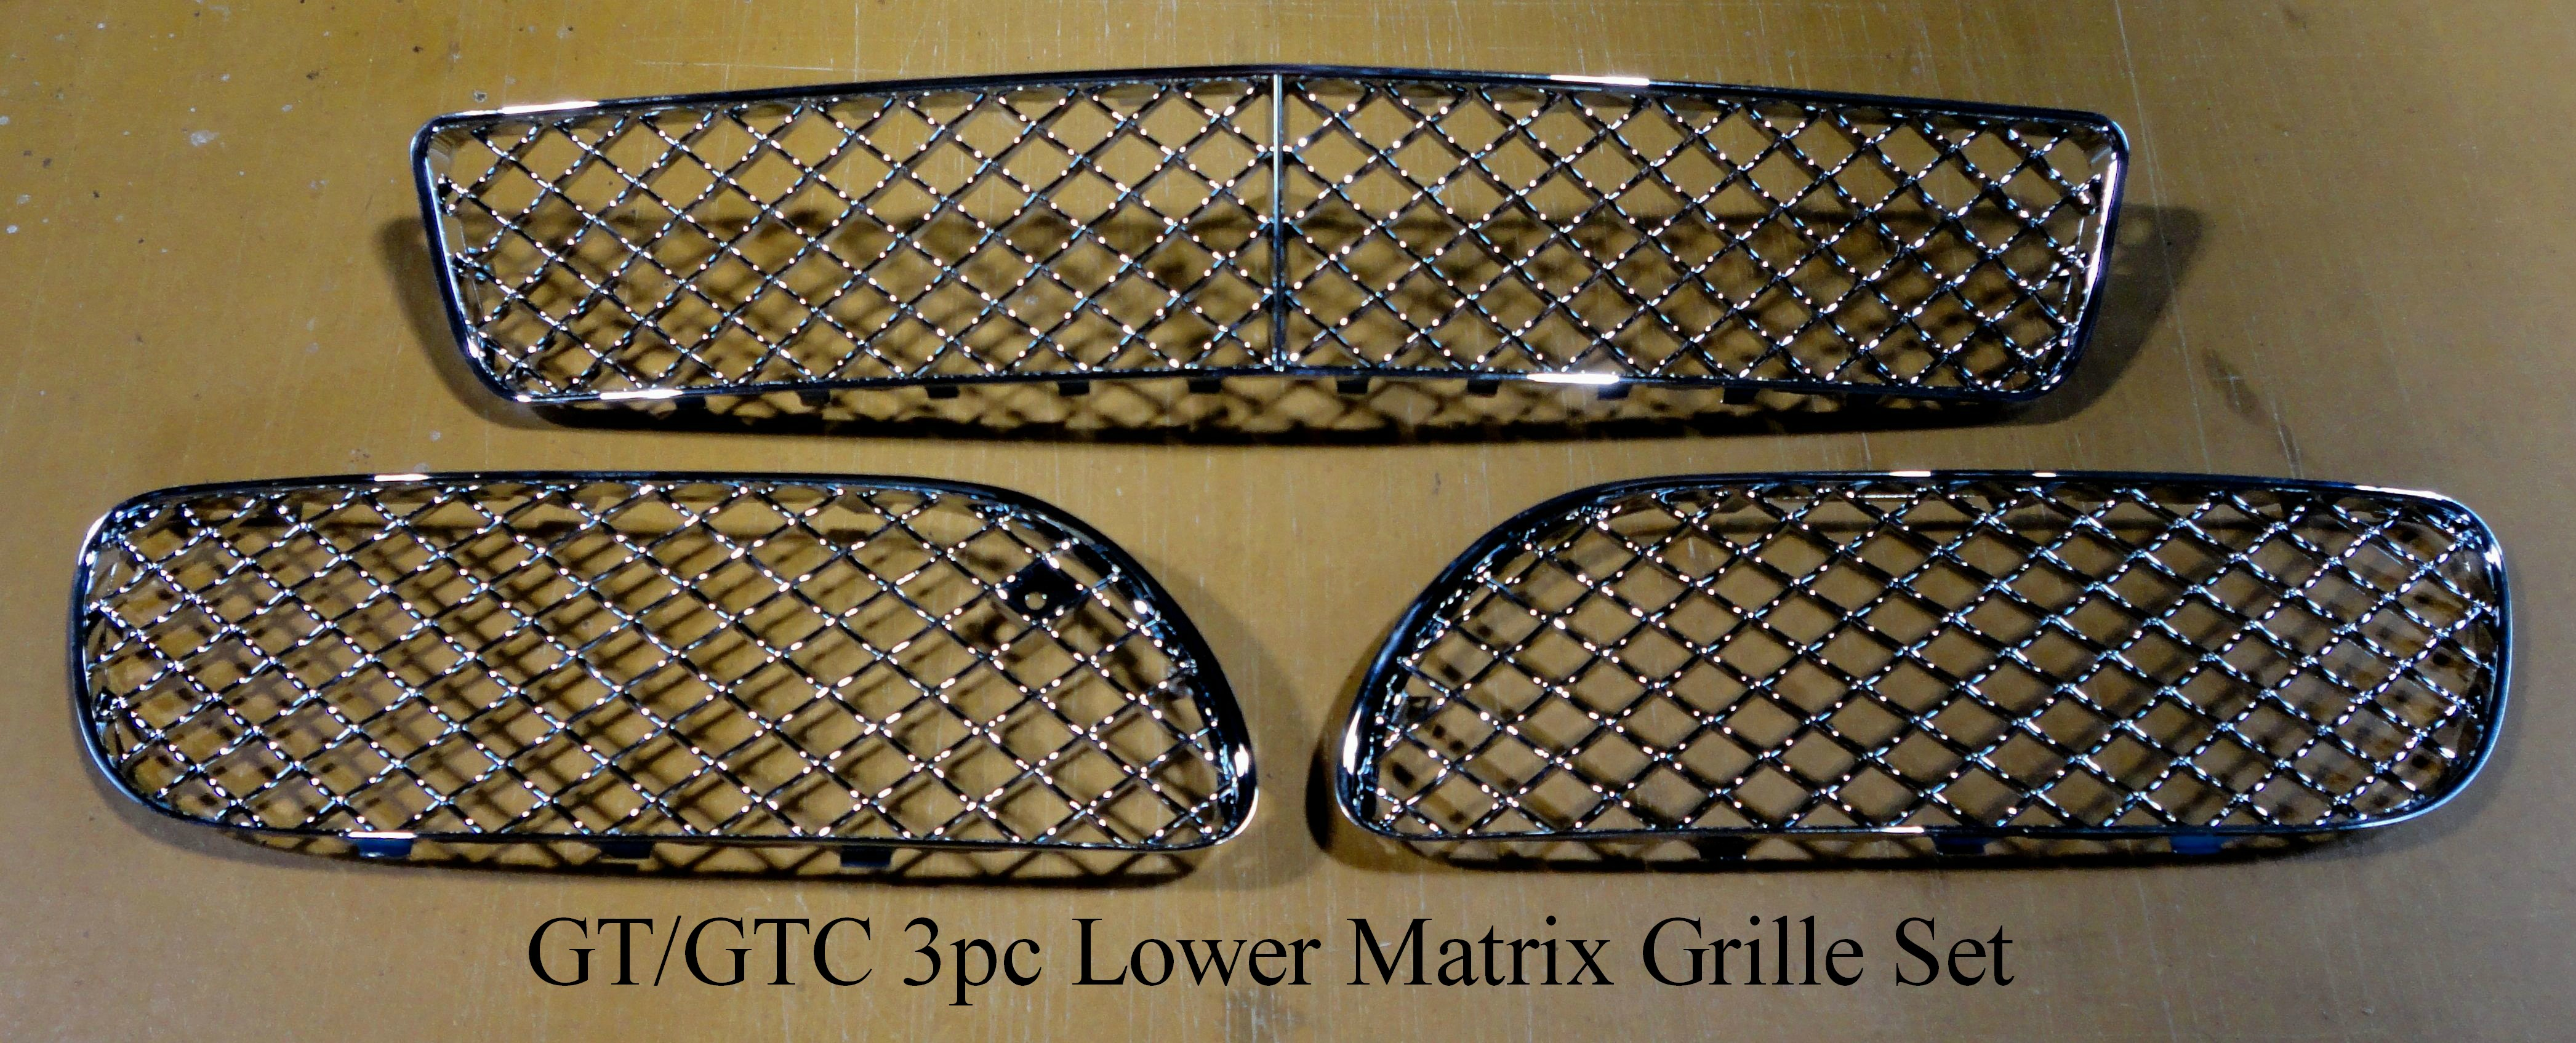 Click image for larger version  Name:GT-3pc-6.jpg Views:90 Size:1.58 MB ID:178682